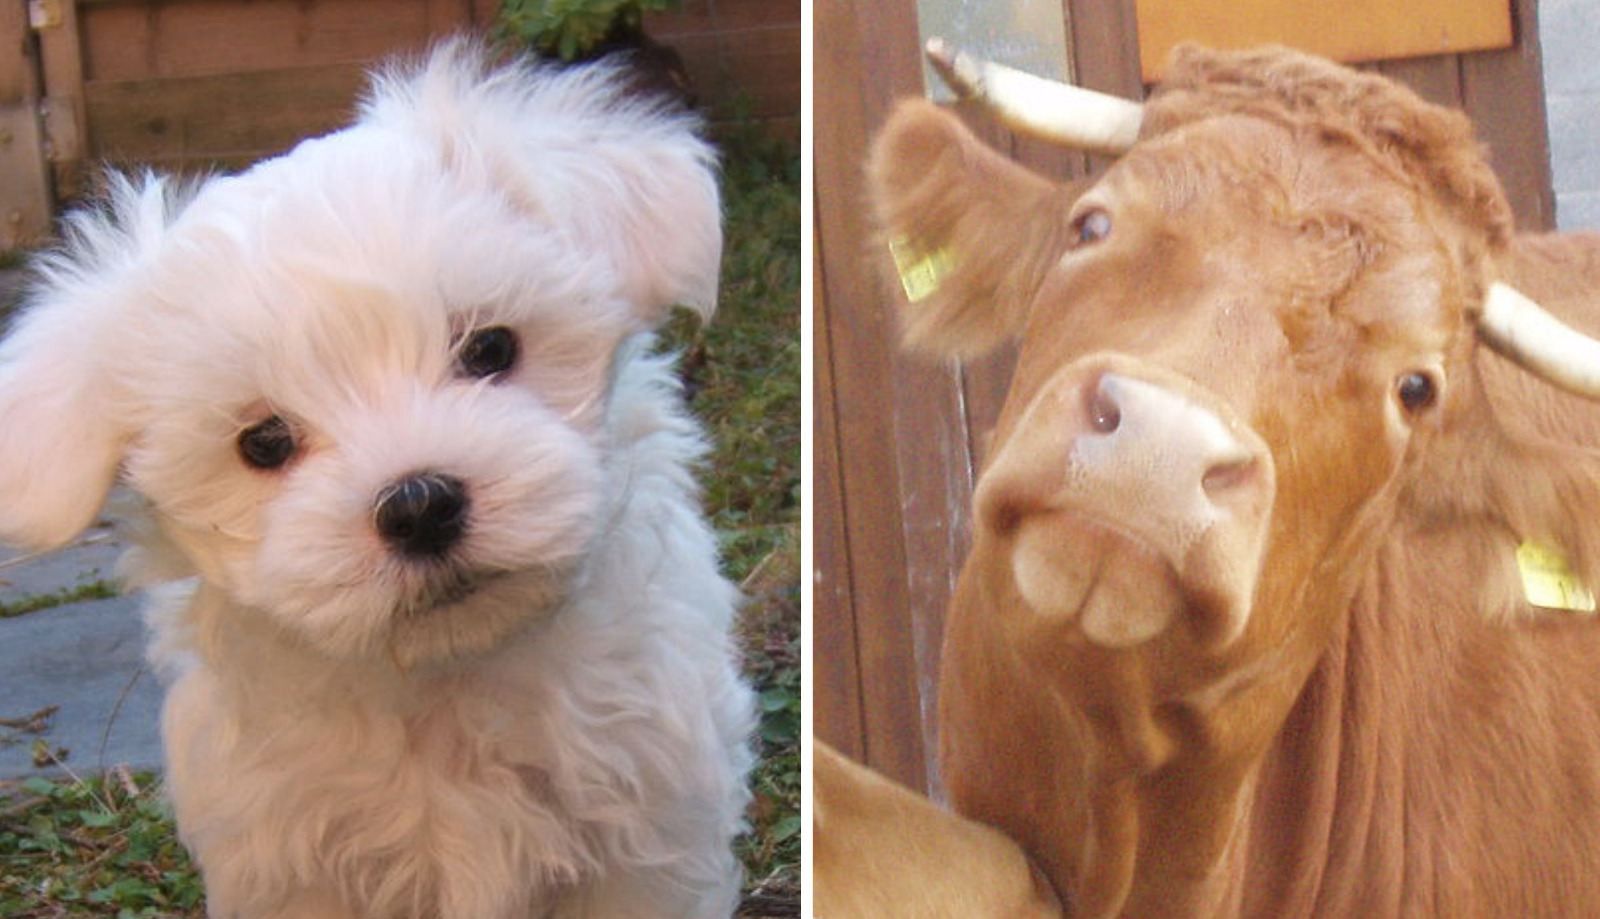 9 Ways Farm Animals Are Just Like Cats and Dogs